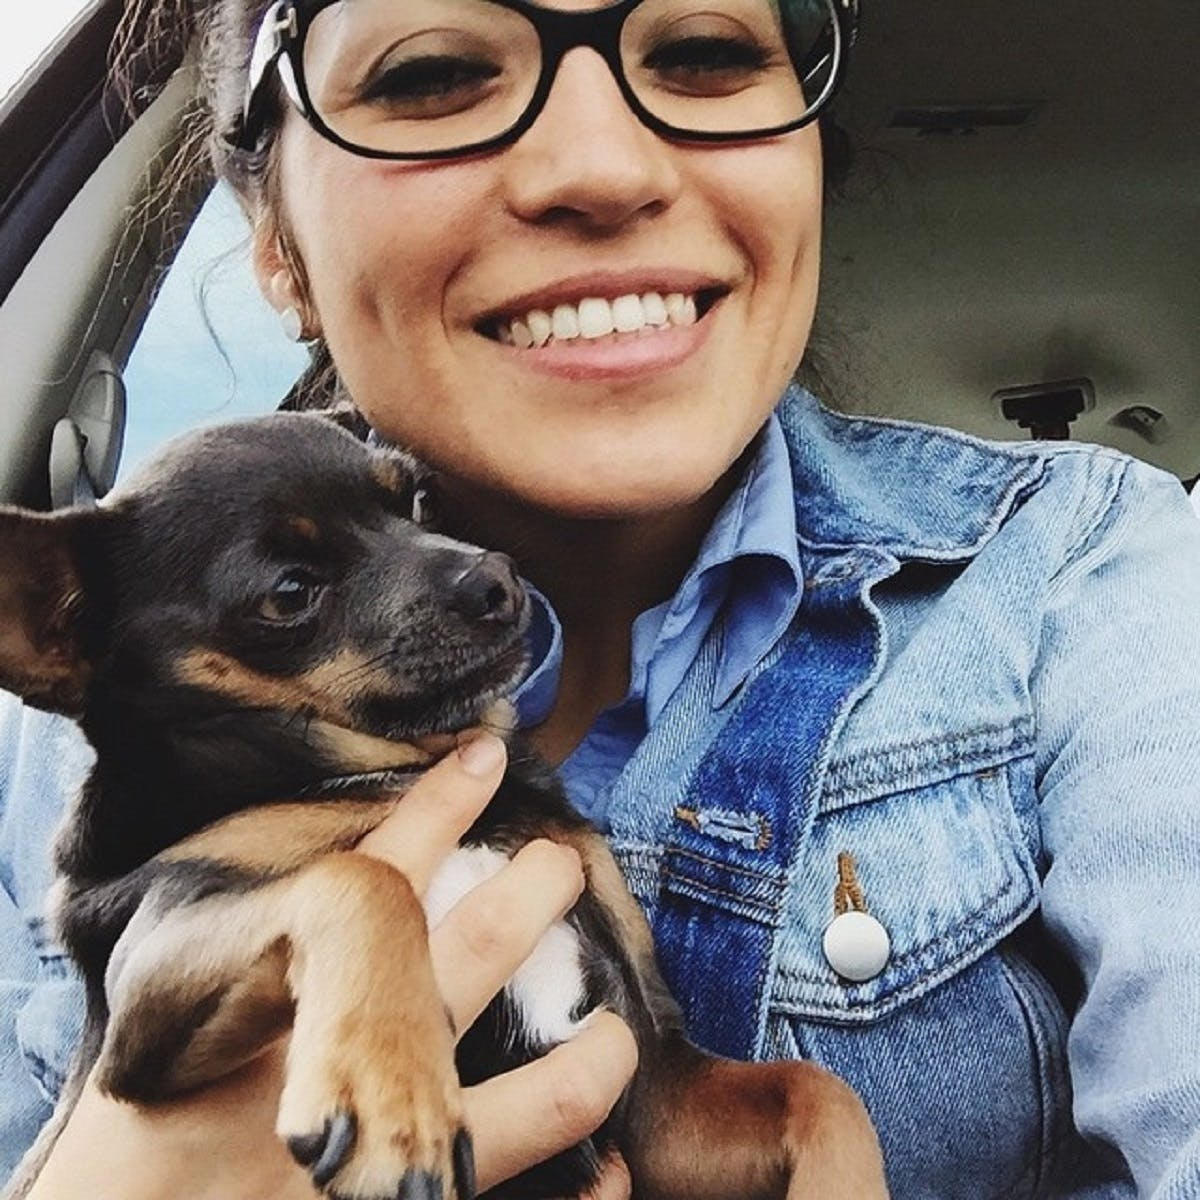 Woman takes a selfie with her dog in the car